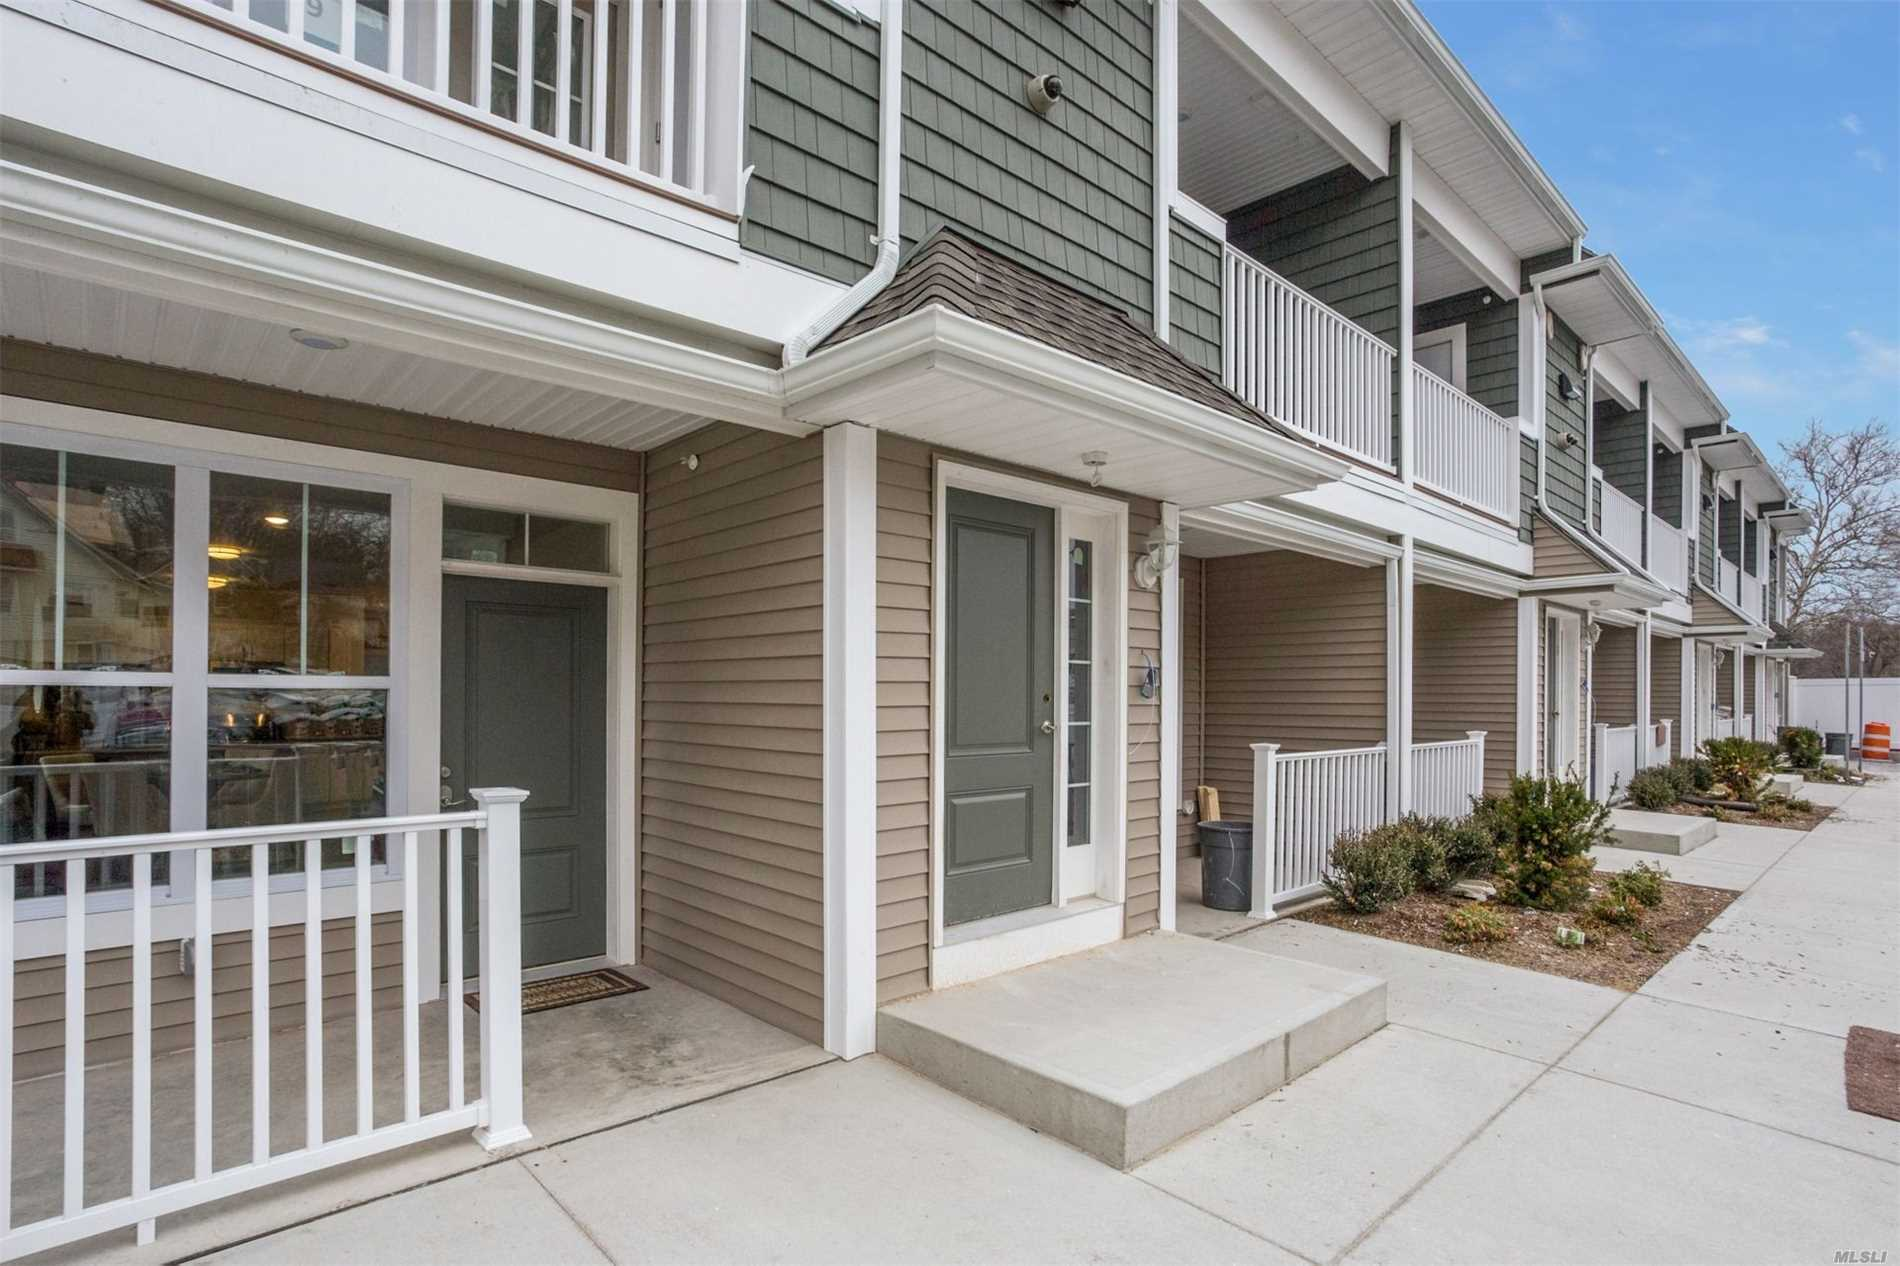 New Spacious One Bedroom Apartments. Designer Eik W/Ss Appliances -Gas Cooking. Wood Design Flooring, Large Closets, CAC, Washer/Dryer, Balcony Or Private Porch Per Unit. Conveniently Located. A Must See!